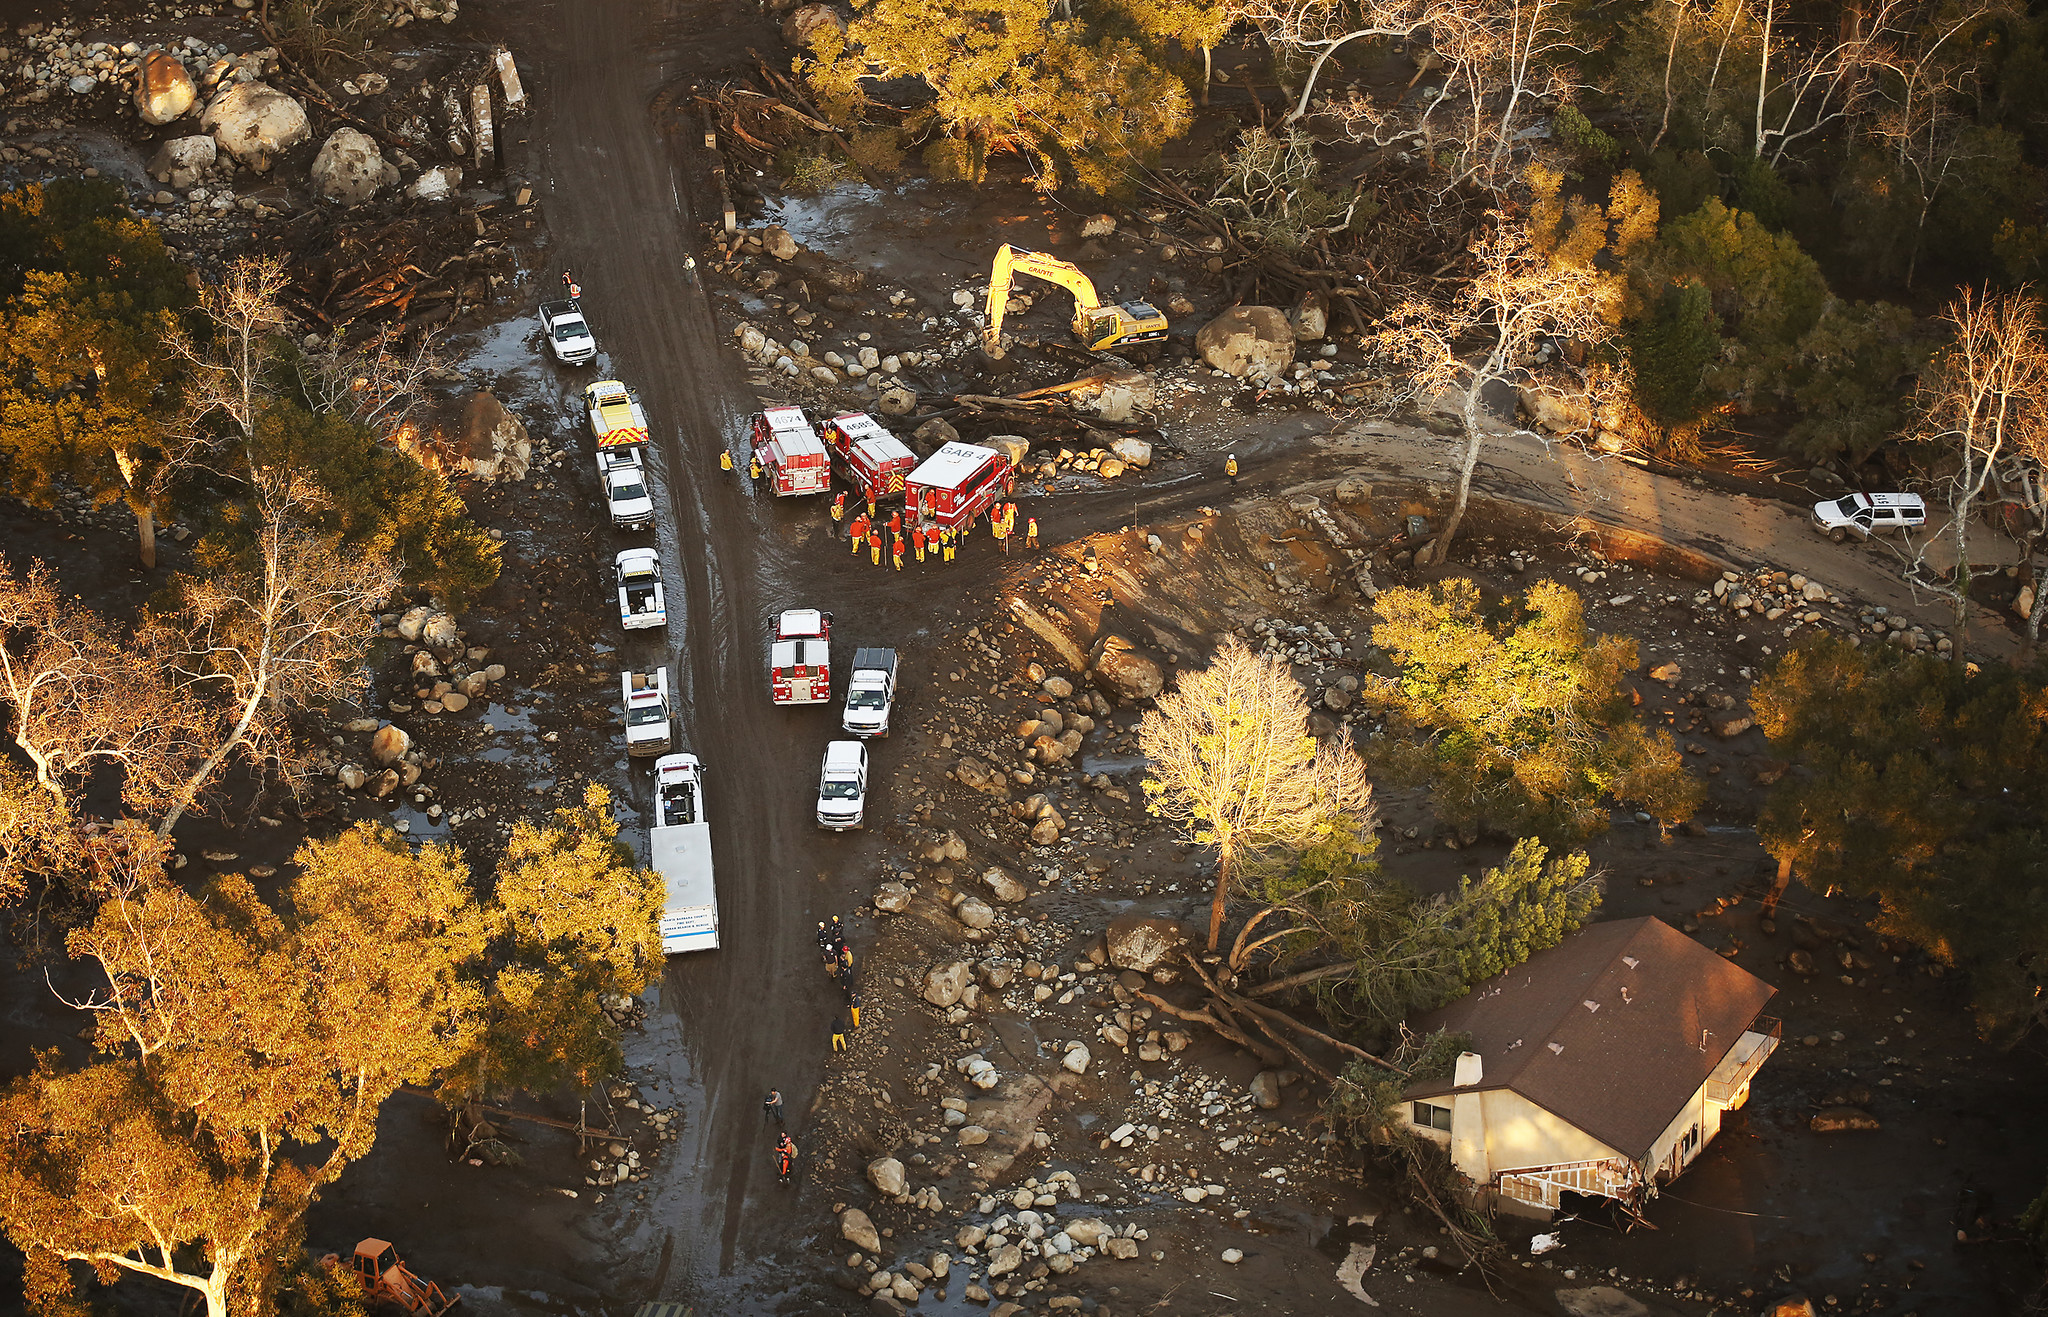 MONTECITO, CA – JANUARY 10, 2018: Crews work in the Romero Canyon area surrounded by mud and debr